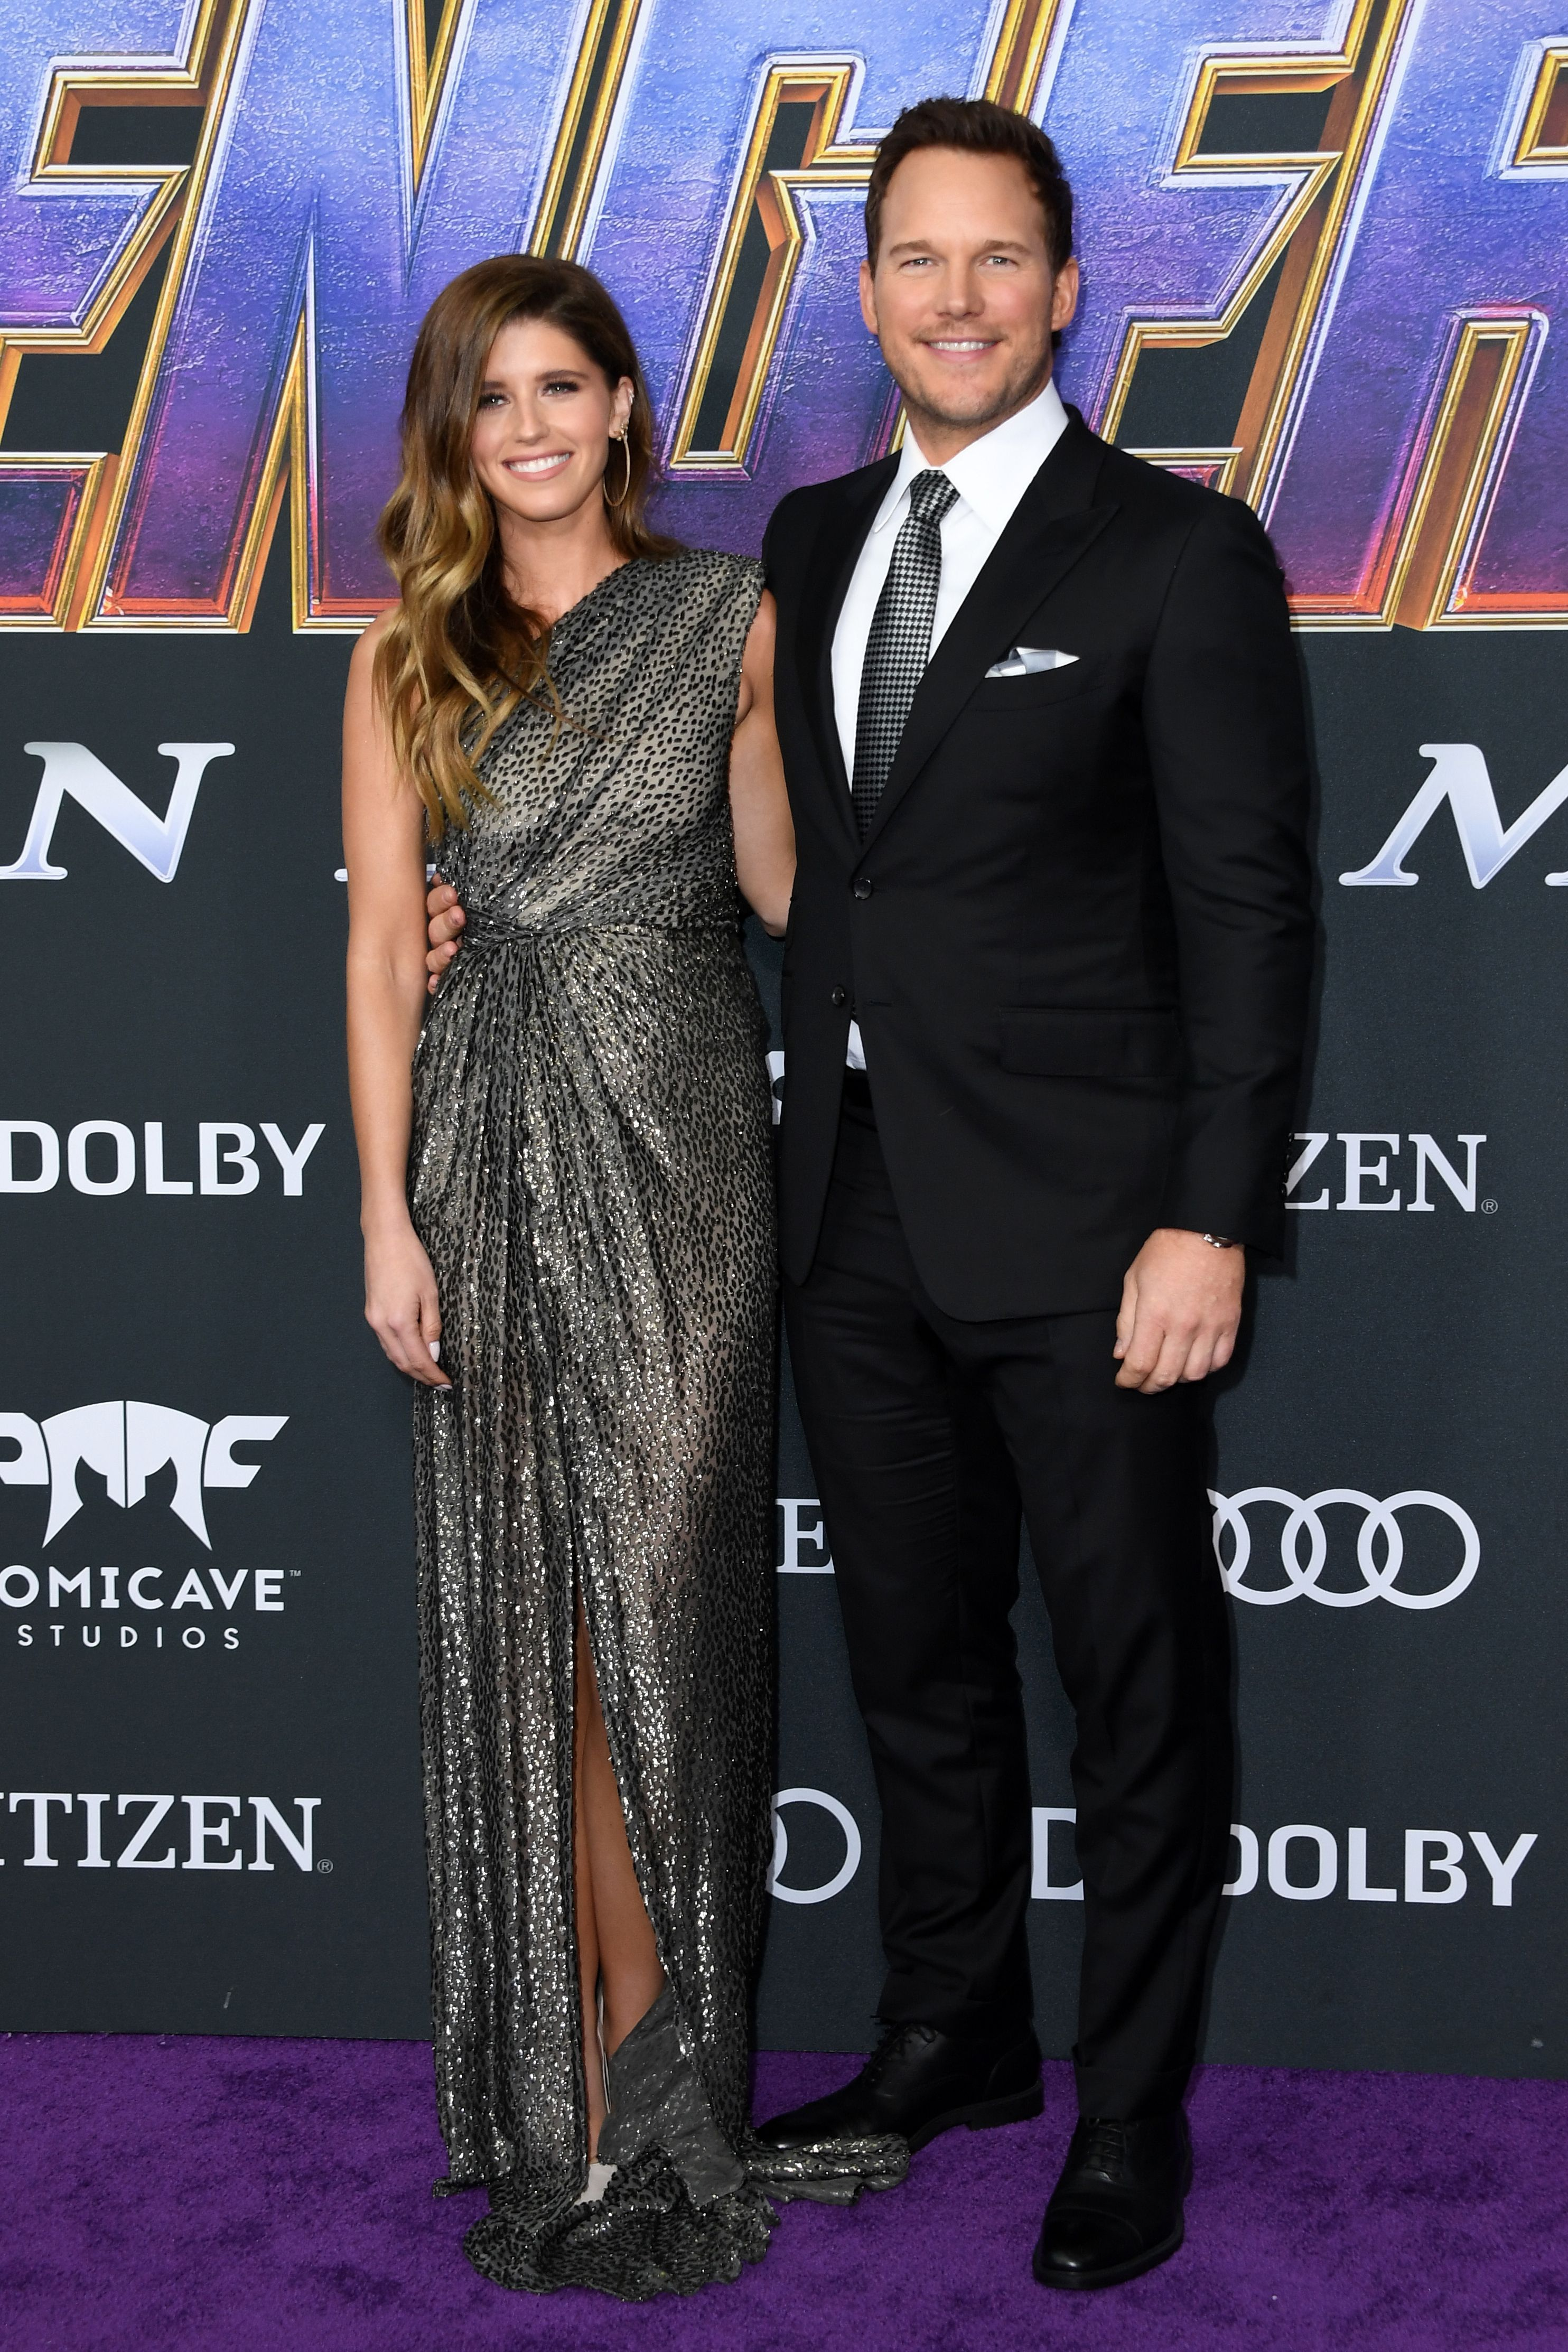 Chris Pratt and Katherine Schwarzenegger Schwarzenegger in Monique Lhuillier.